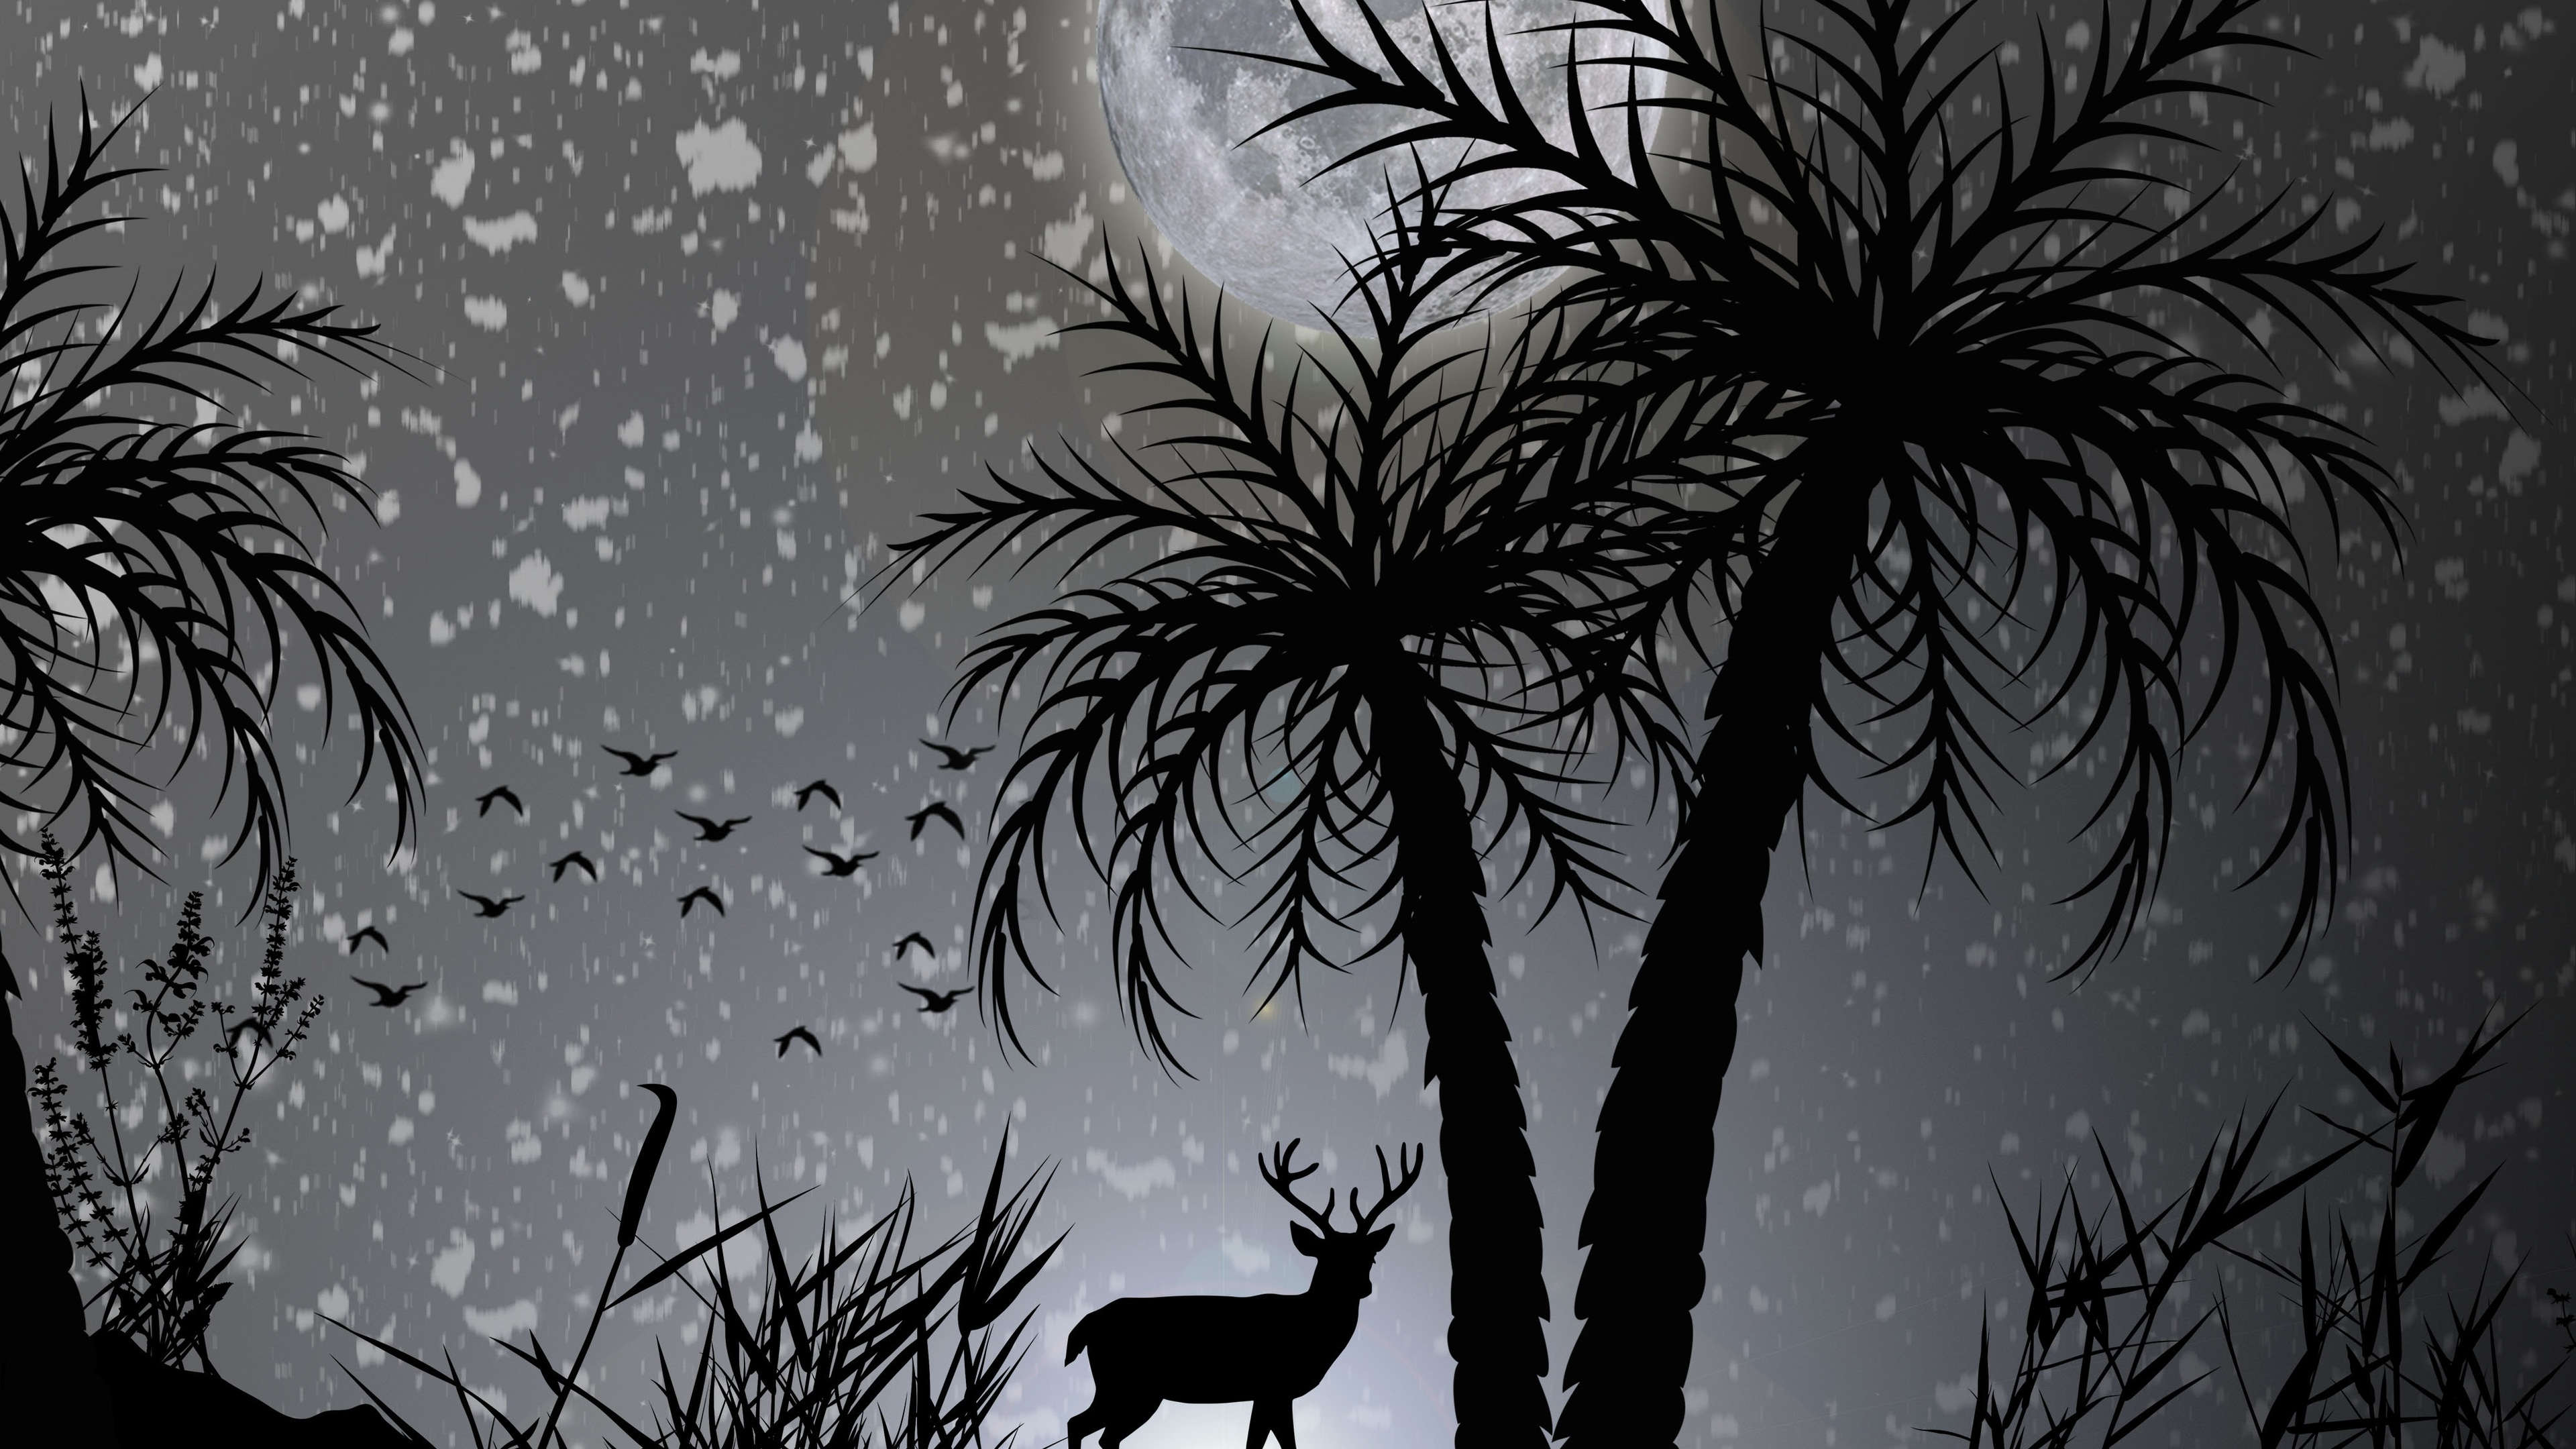 reindeer dark night moon minimalist 4k 1540756124 - Reindeer Dark Night Moon Minimalist 4k - reindeer wallpapers, moon wallpapers, monochrome wallpapers, minimalist wallpapers, minimalism wallpapers, hd-wallpapers, deer wallpapers, dark wallpapers, black and white wallpapers, 4k-wallpapers